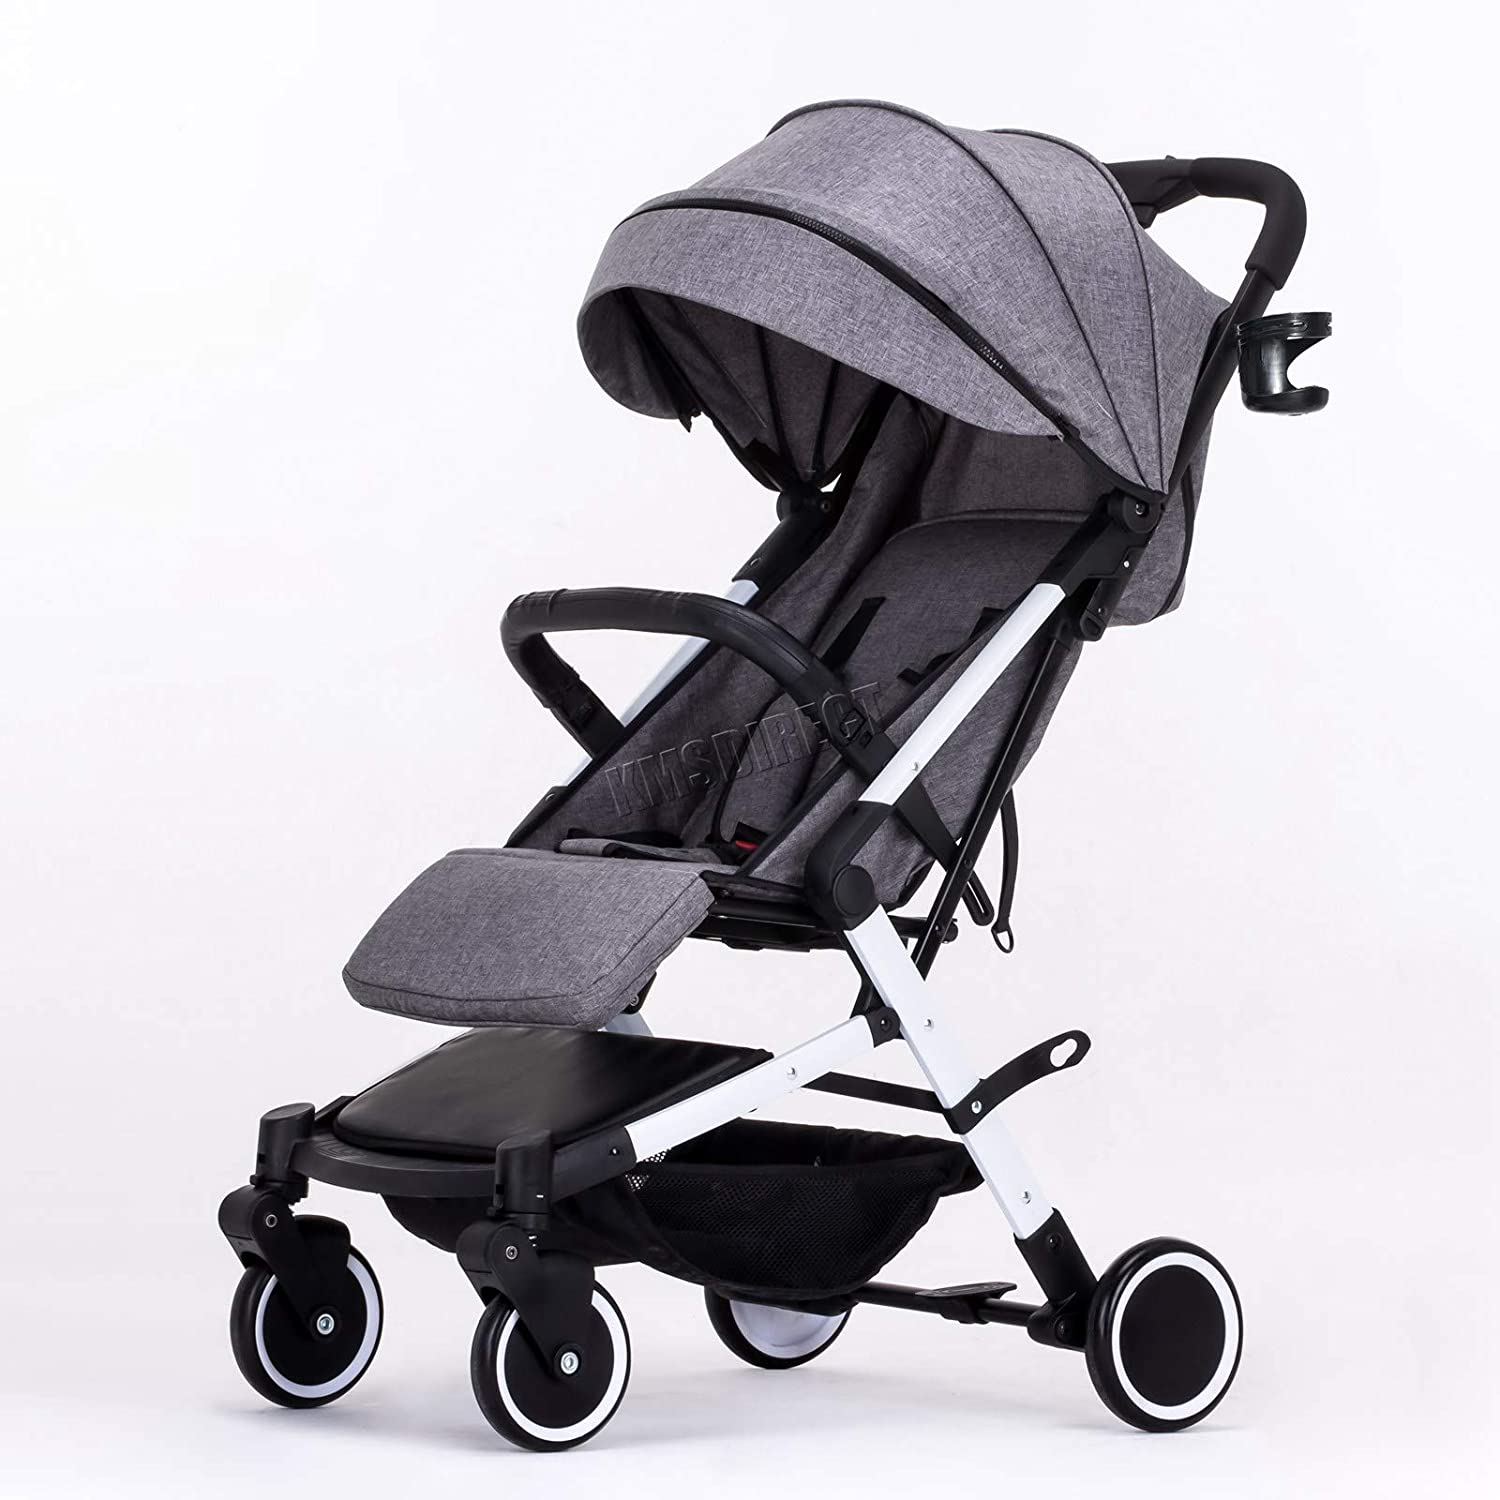 FoxHunter Foldable Baby Stroller Pushchair Pram Child Toddler Buggy Adjustable High View Travel BS03 Grey